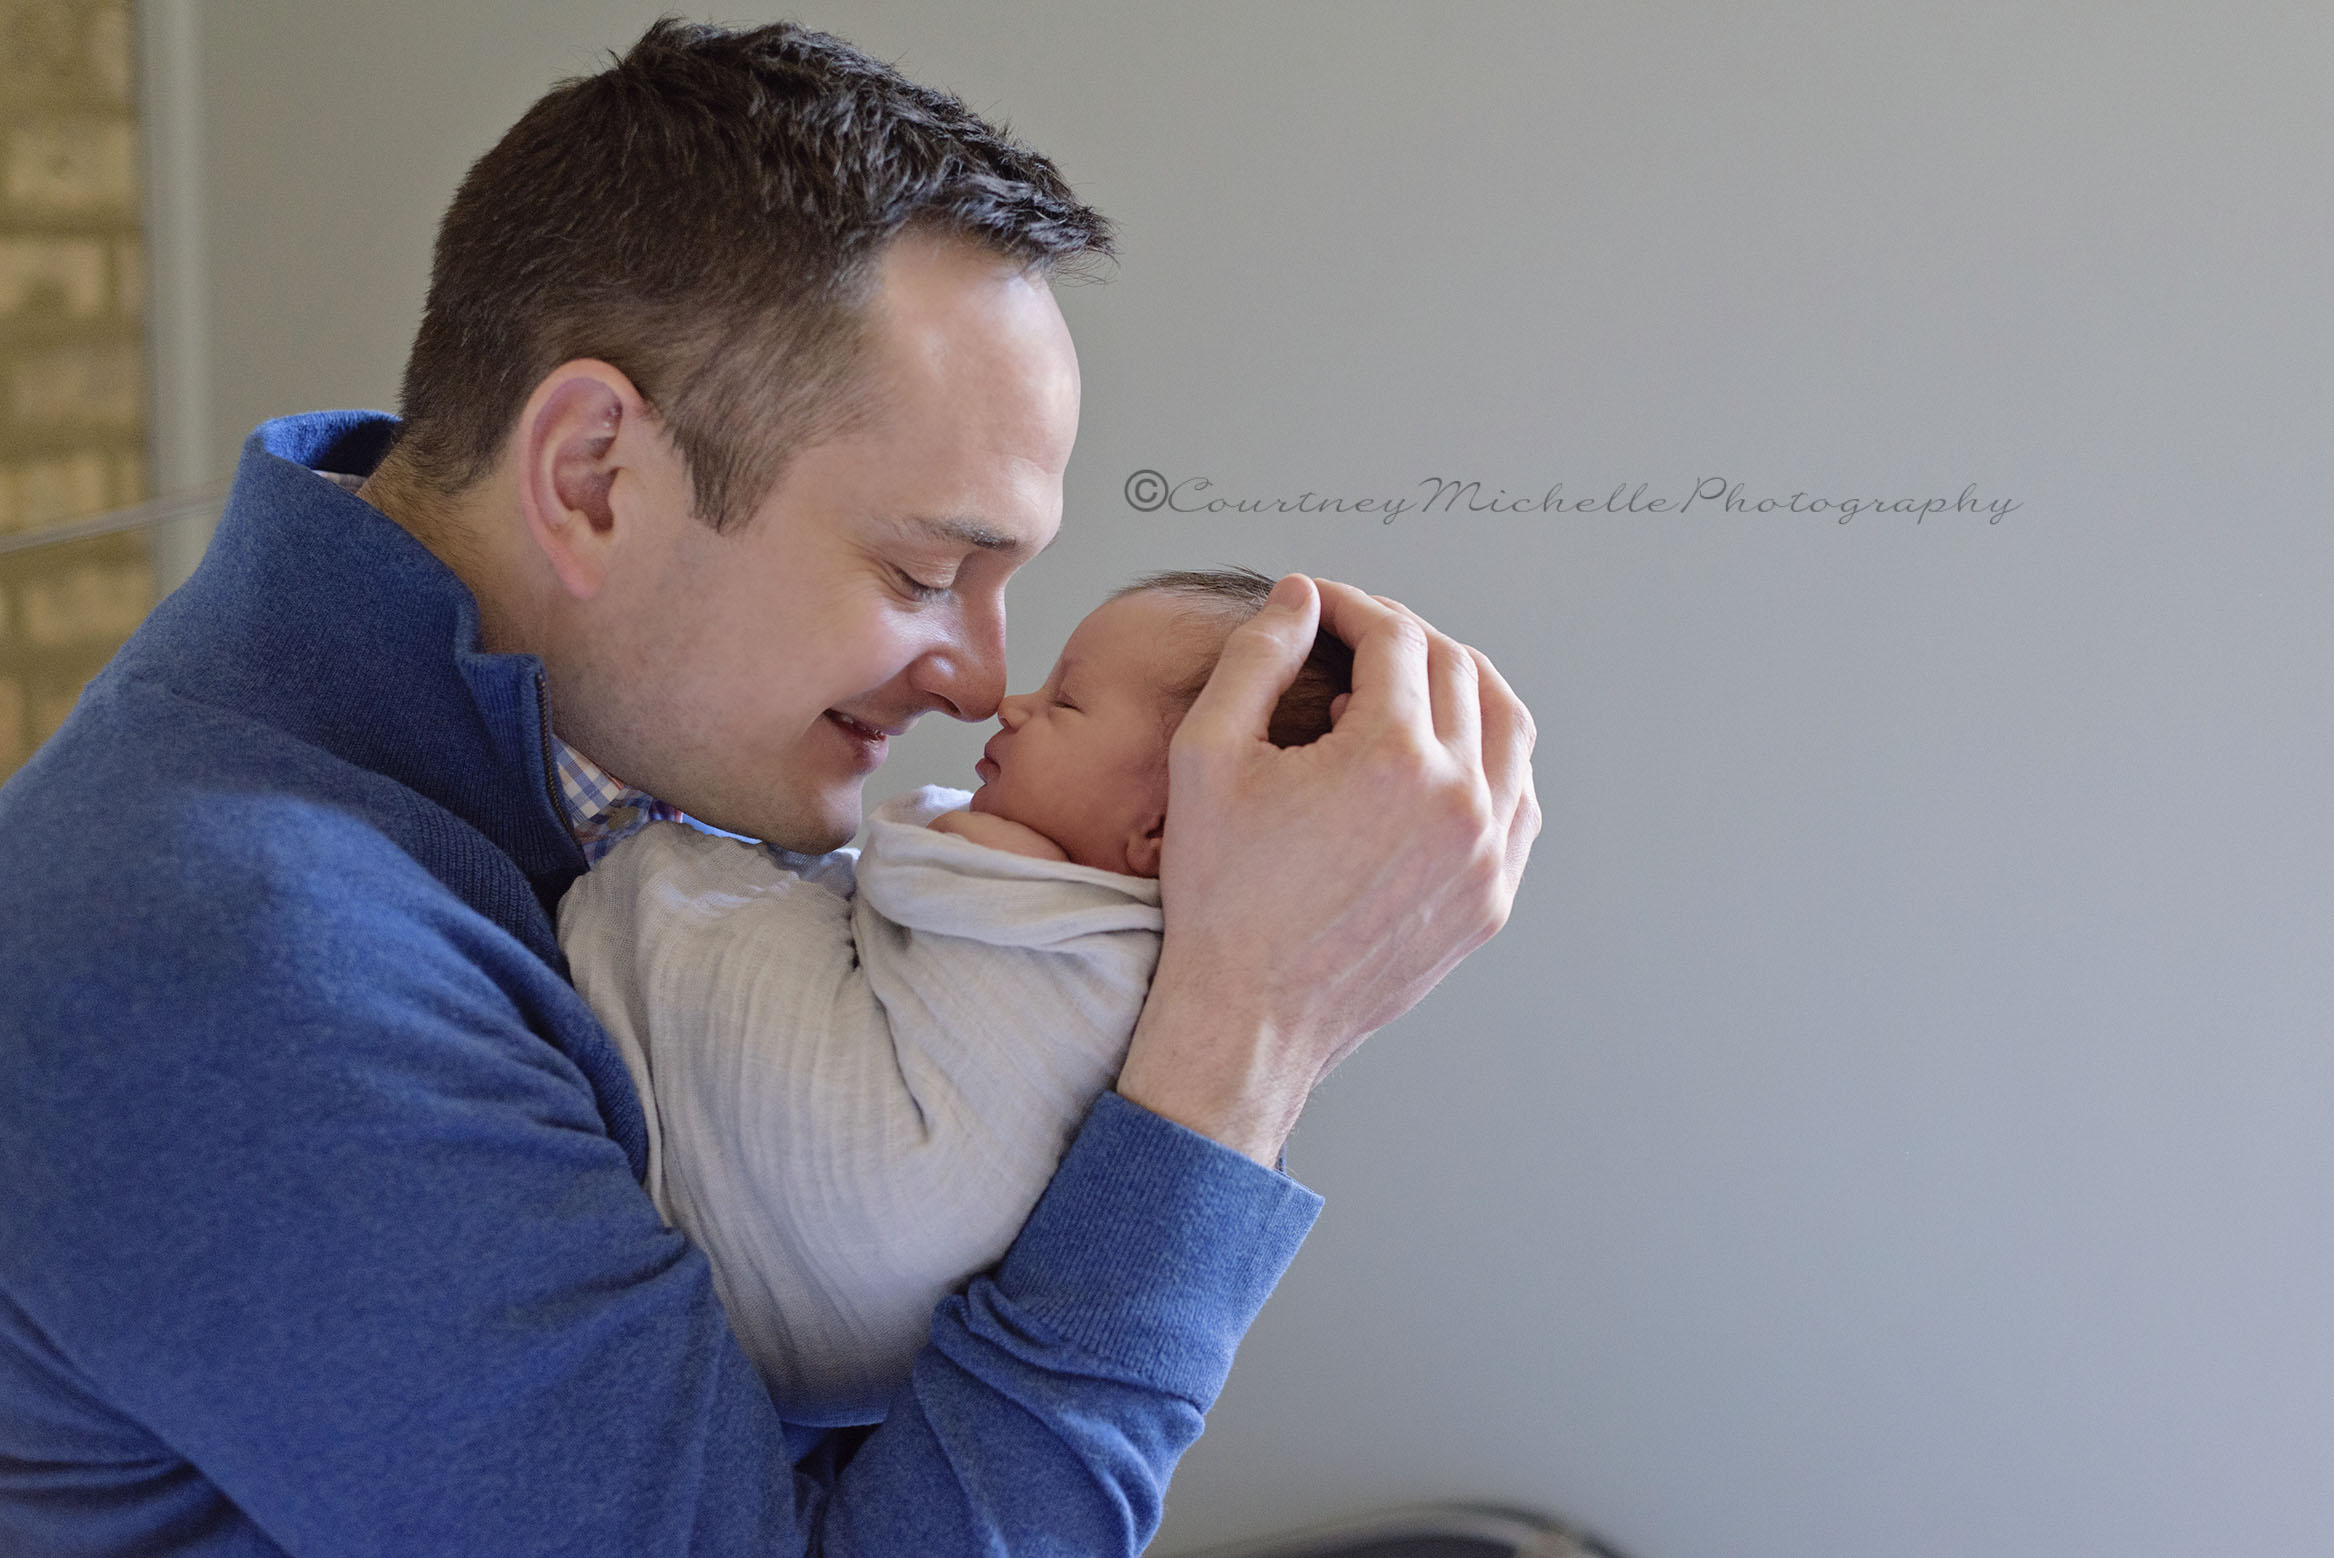 chicago-newborn-photographer-courtney-laper-lifestyle-©COPYRIGHTCMP-1981edit.jpg